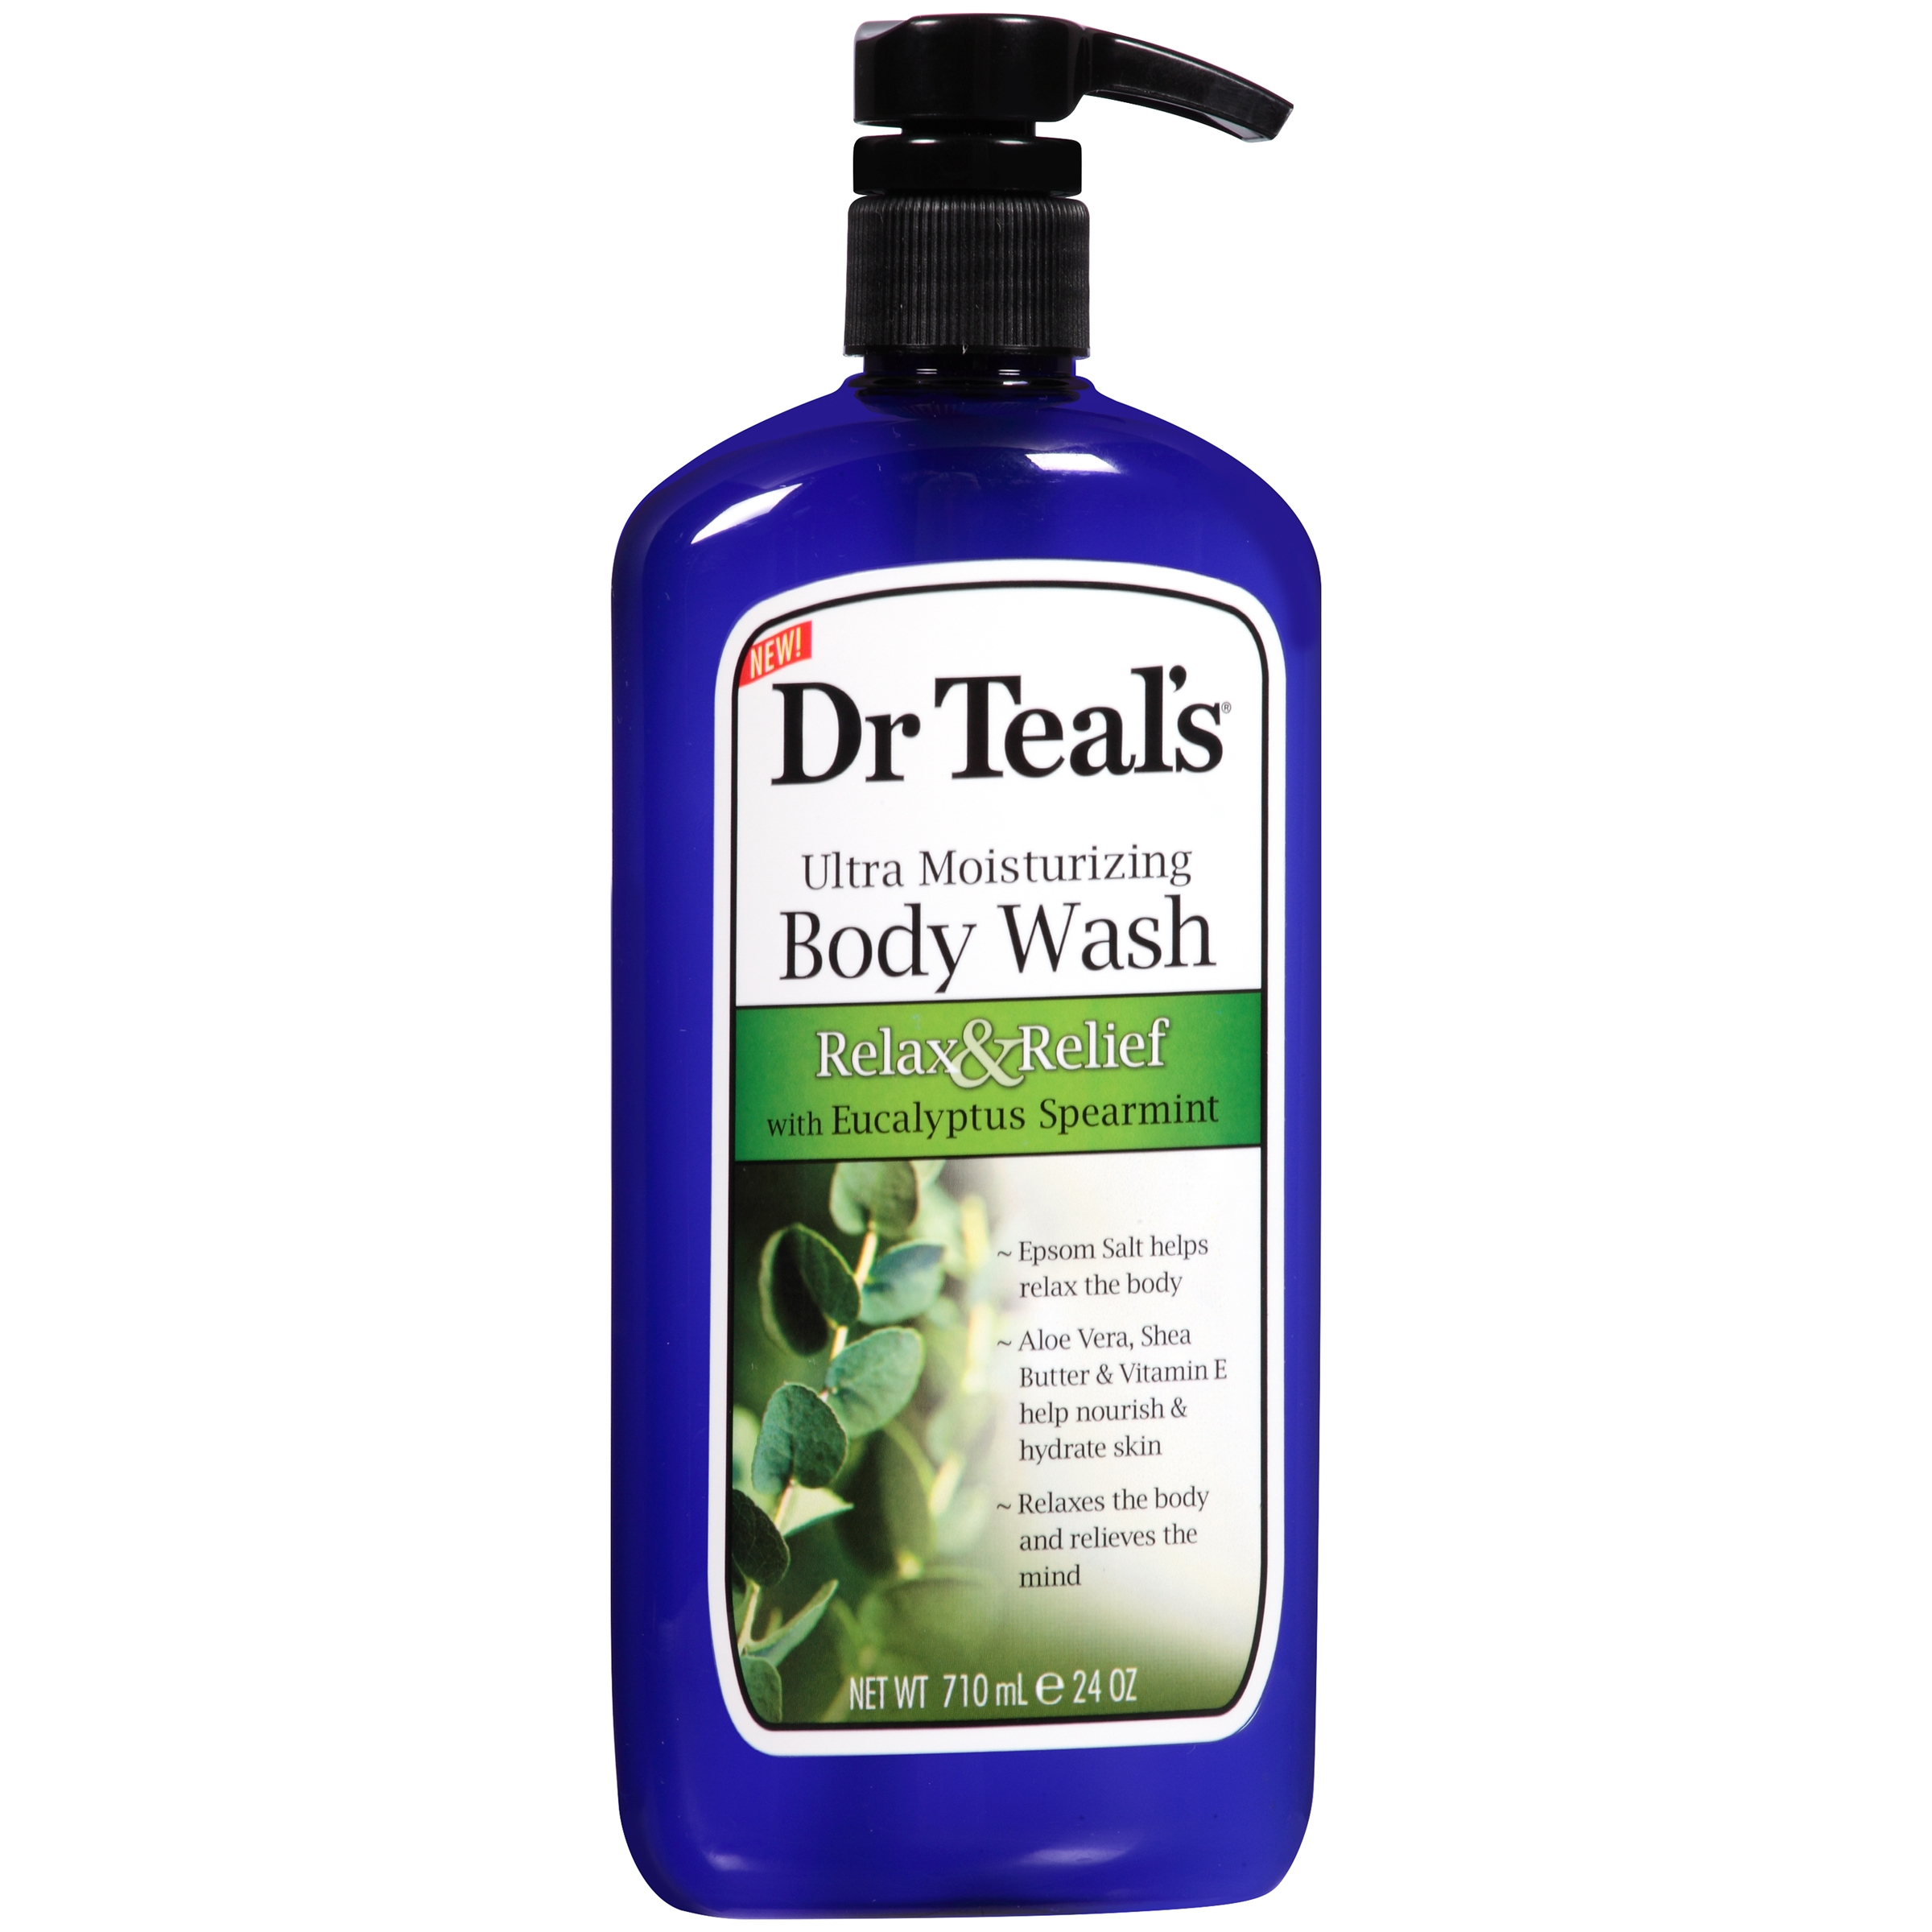 Dr Teal's Ultra Moisturizing Relax & Relief Body Wash with Eucalyptus Spearmint, 24 oz.